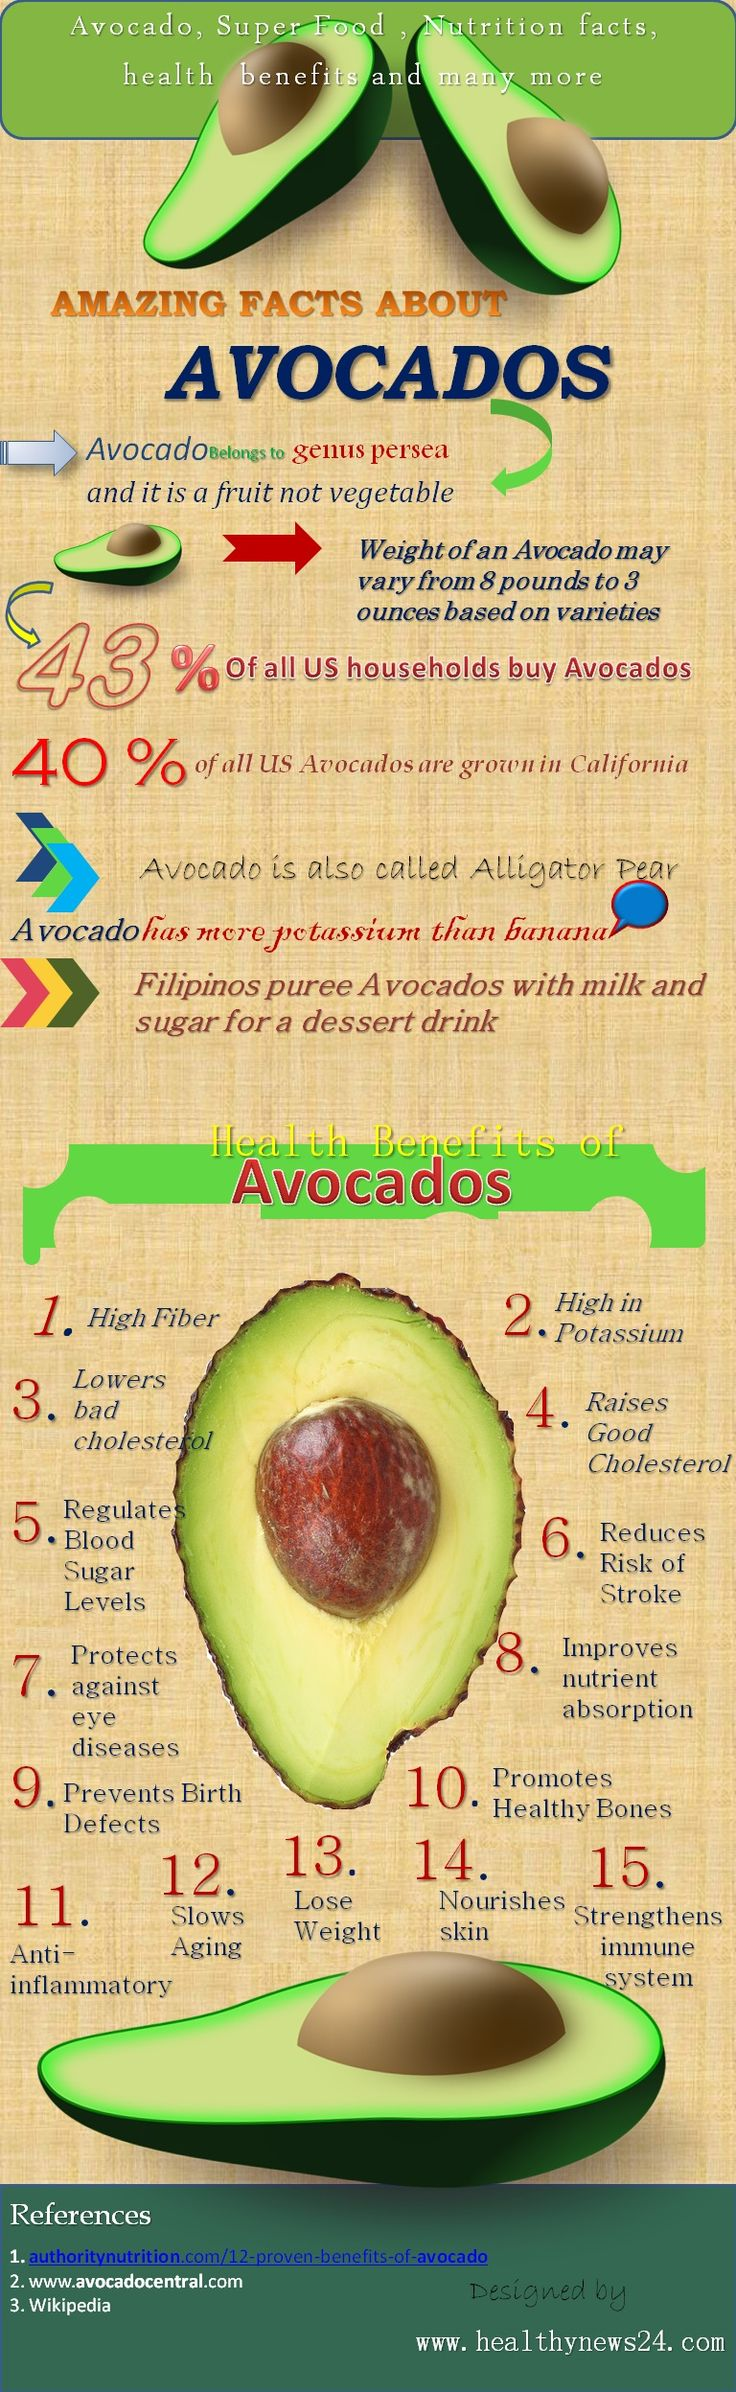 15 Amazing Facts About Avocados